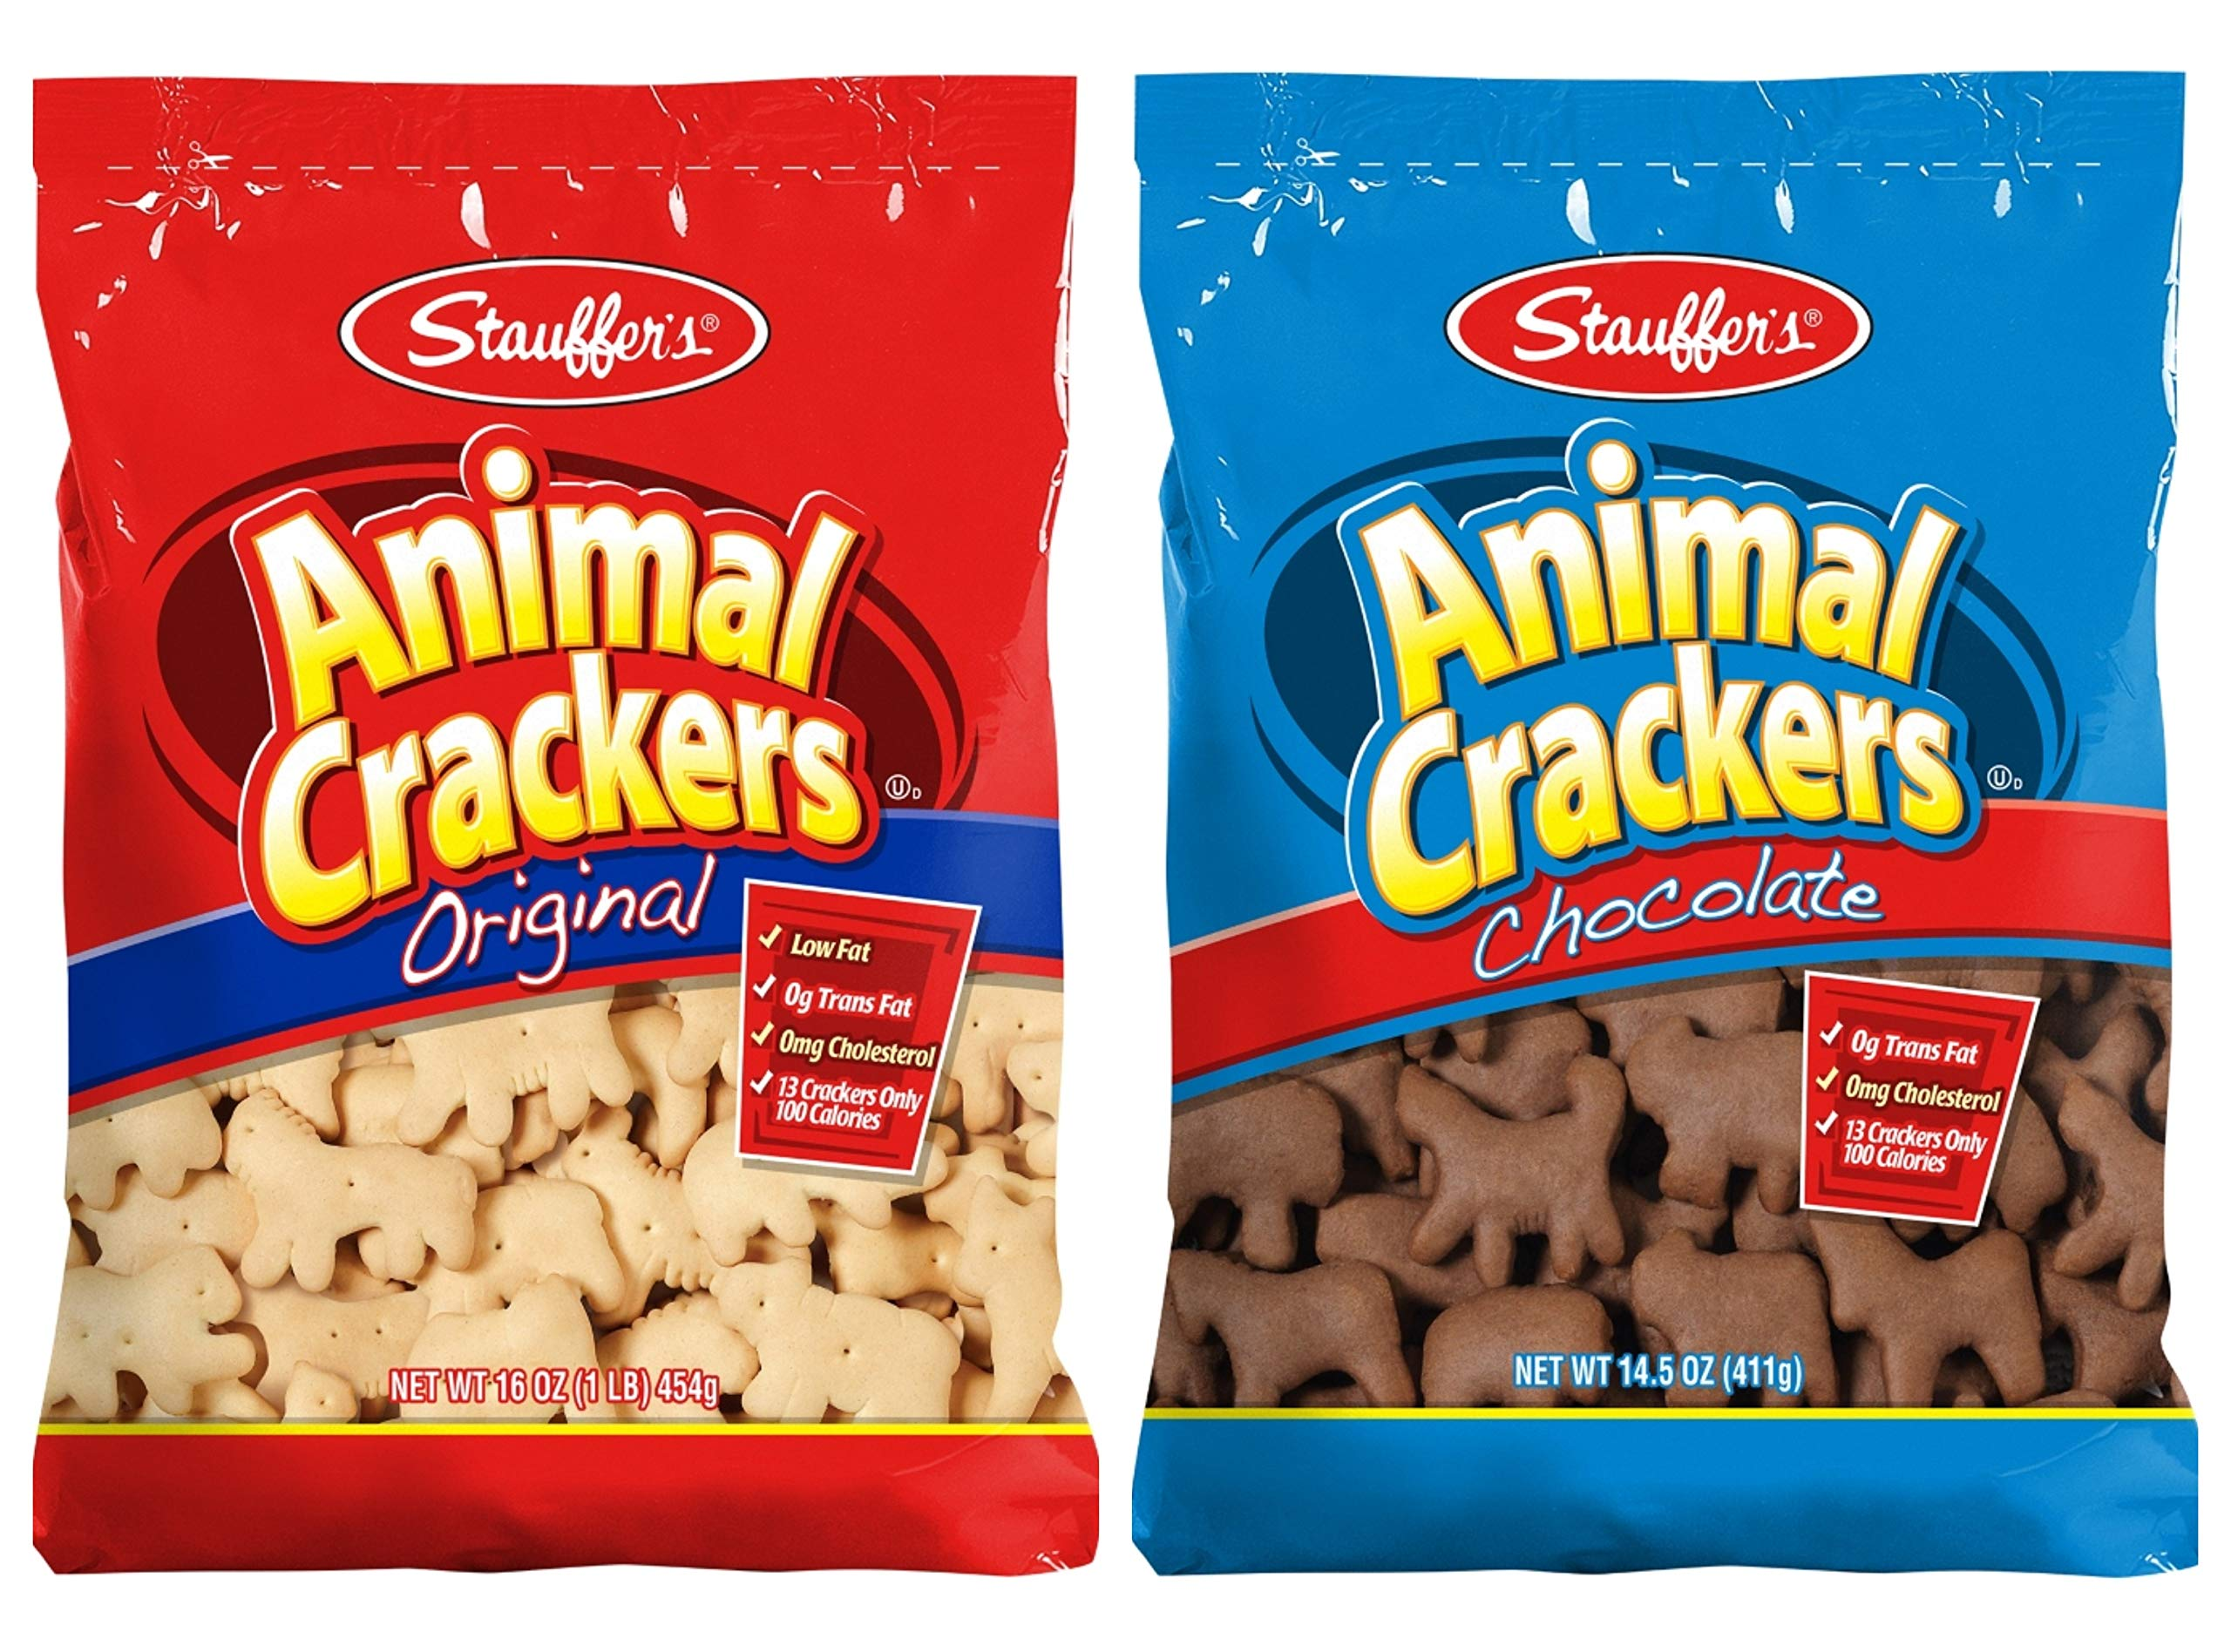 Stauffer's Animal Crackers Snack Cookies: Chocolate and Original [1 Bag of each] by Stauffer's